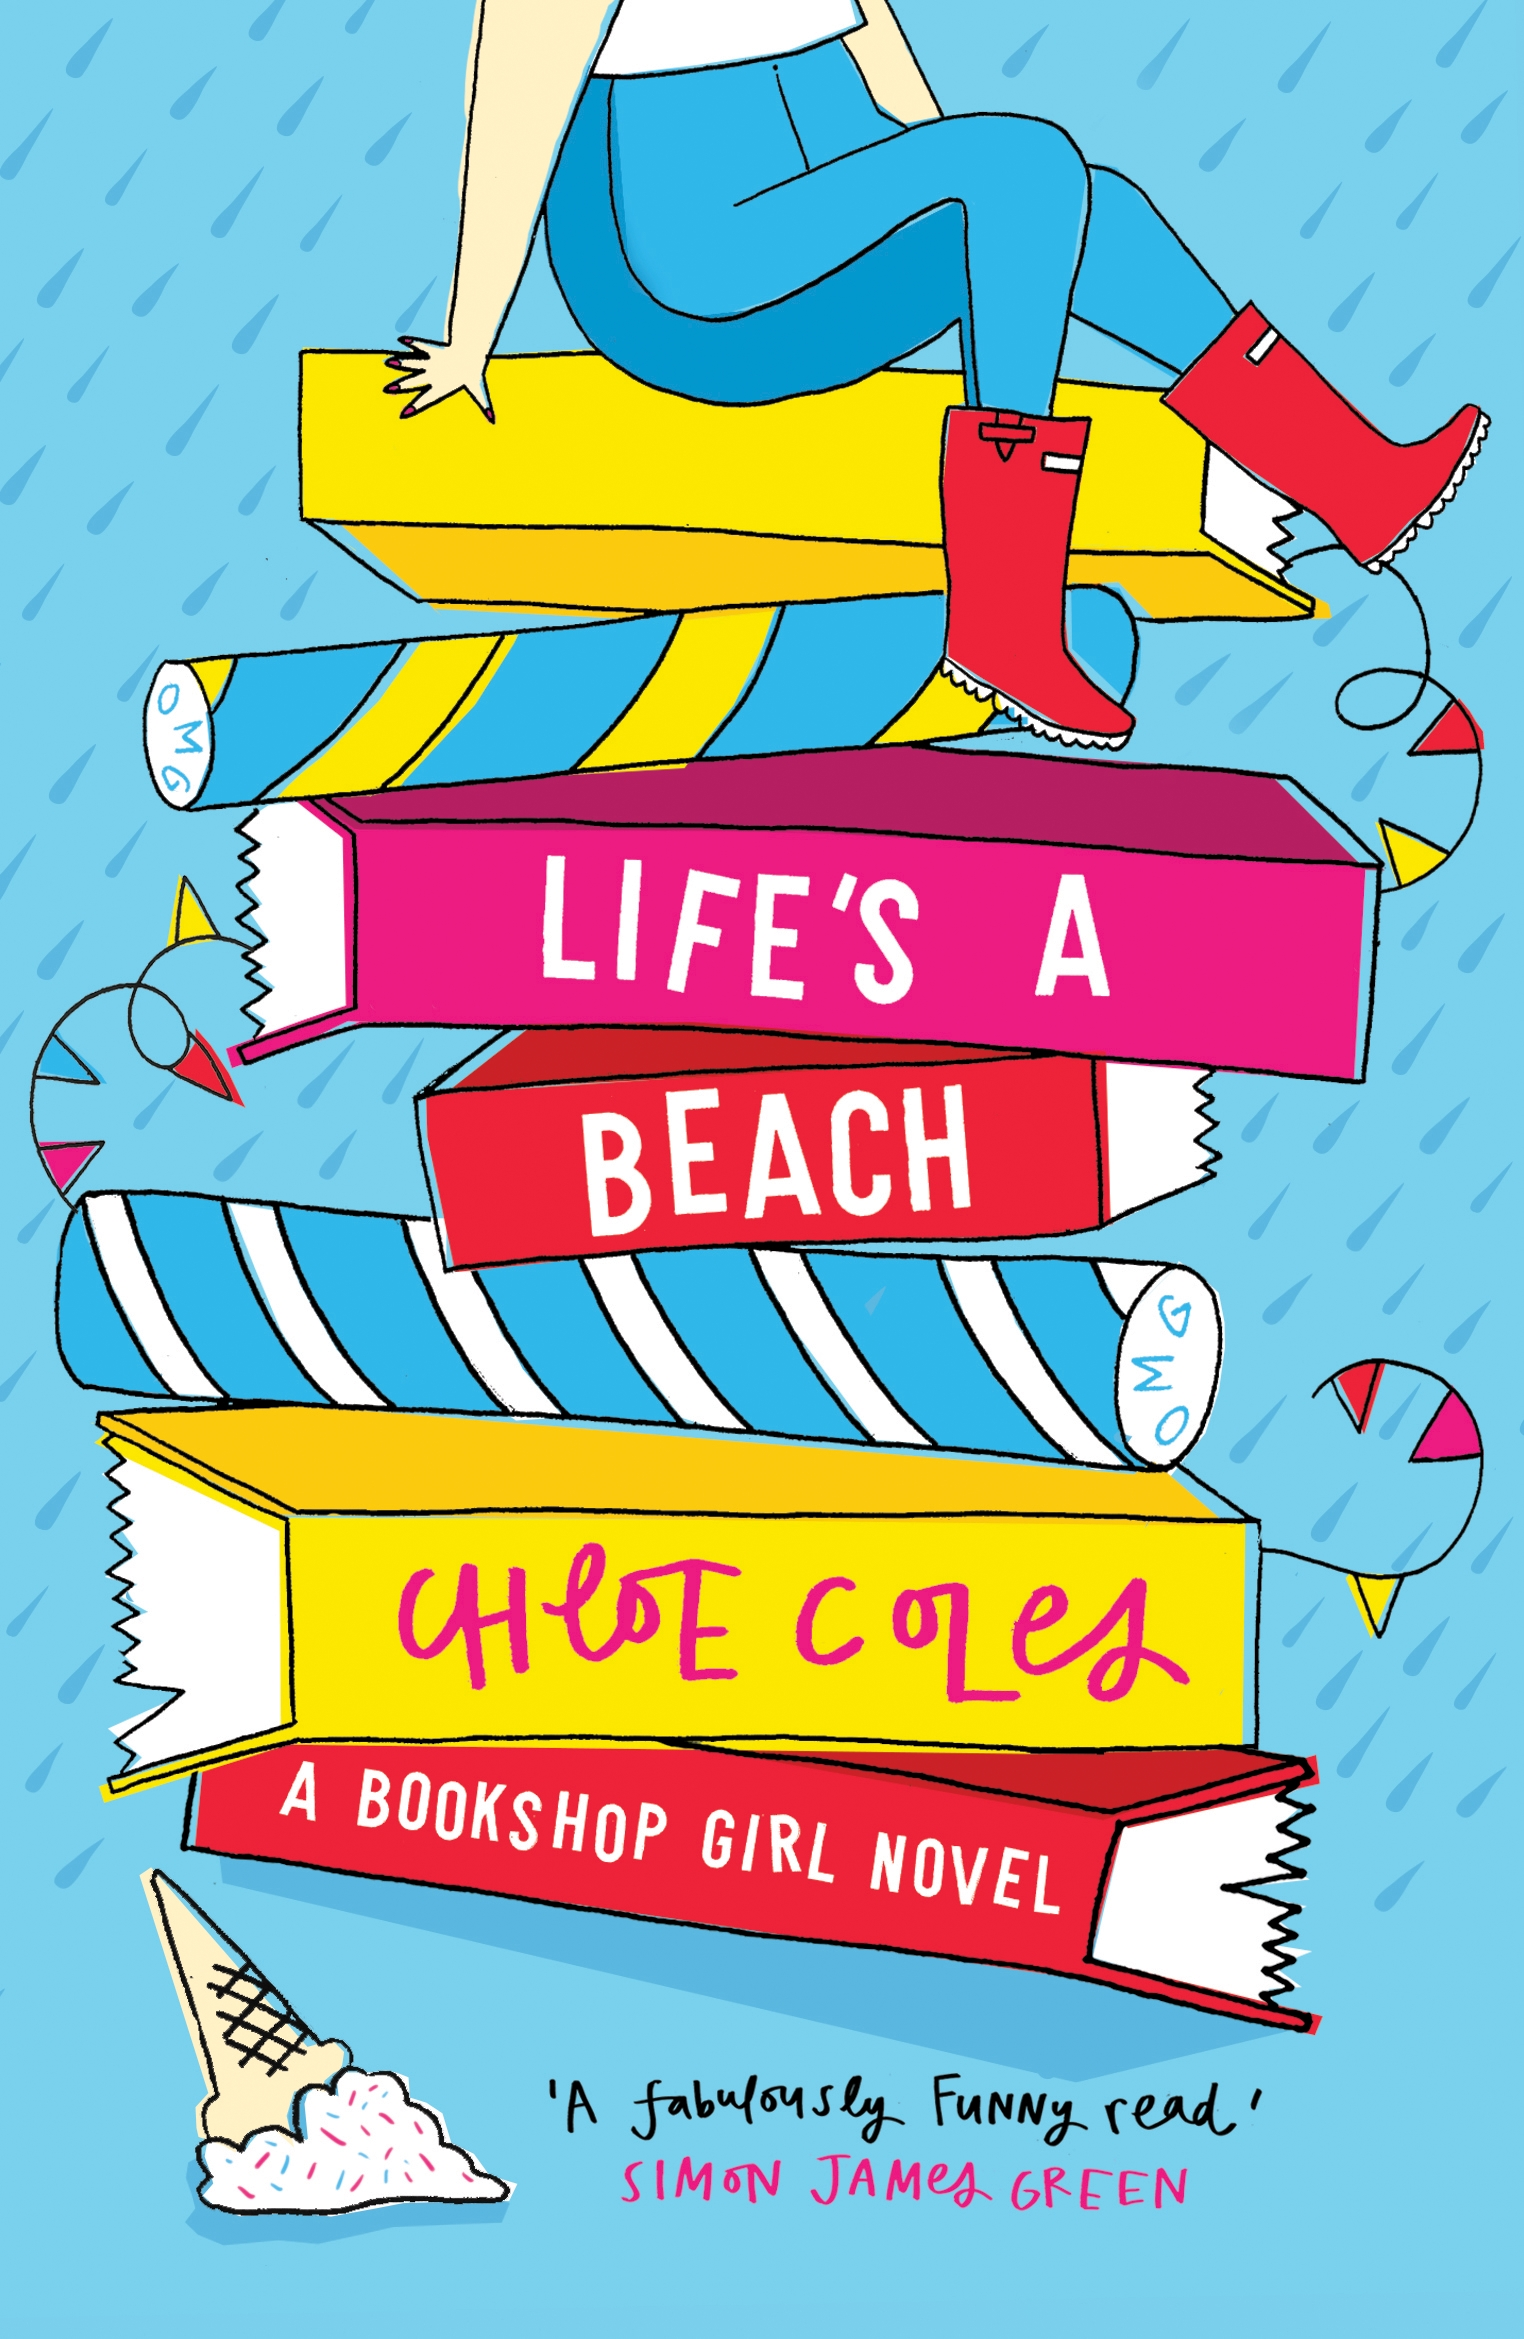 Bookshop Girl: Life's a Beach by Chloe Coles